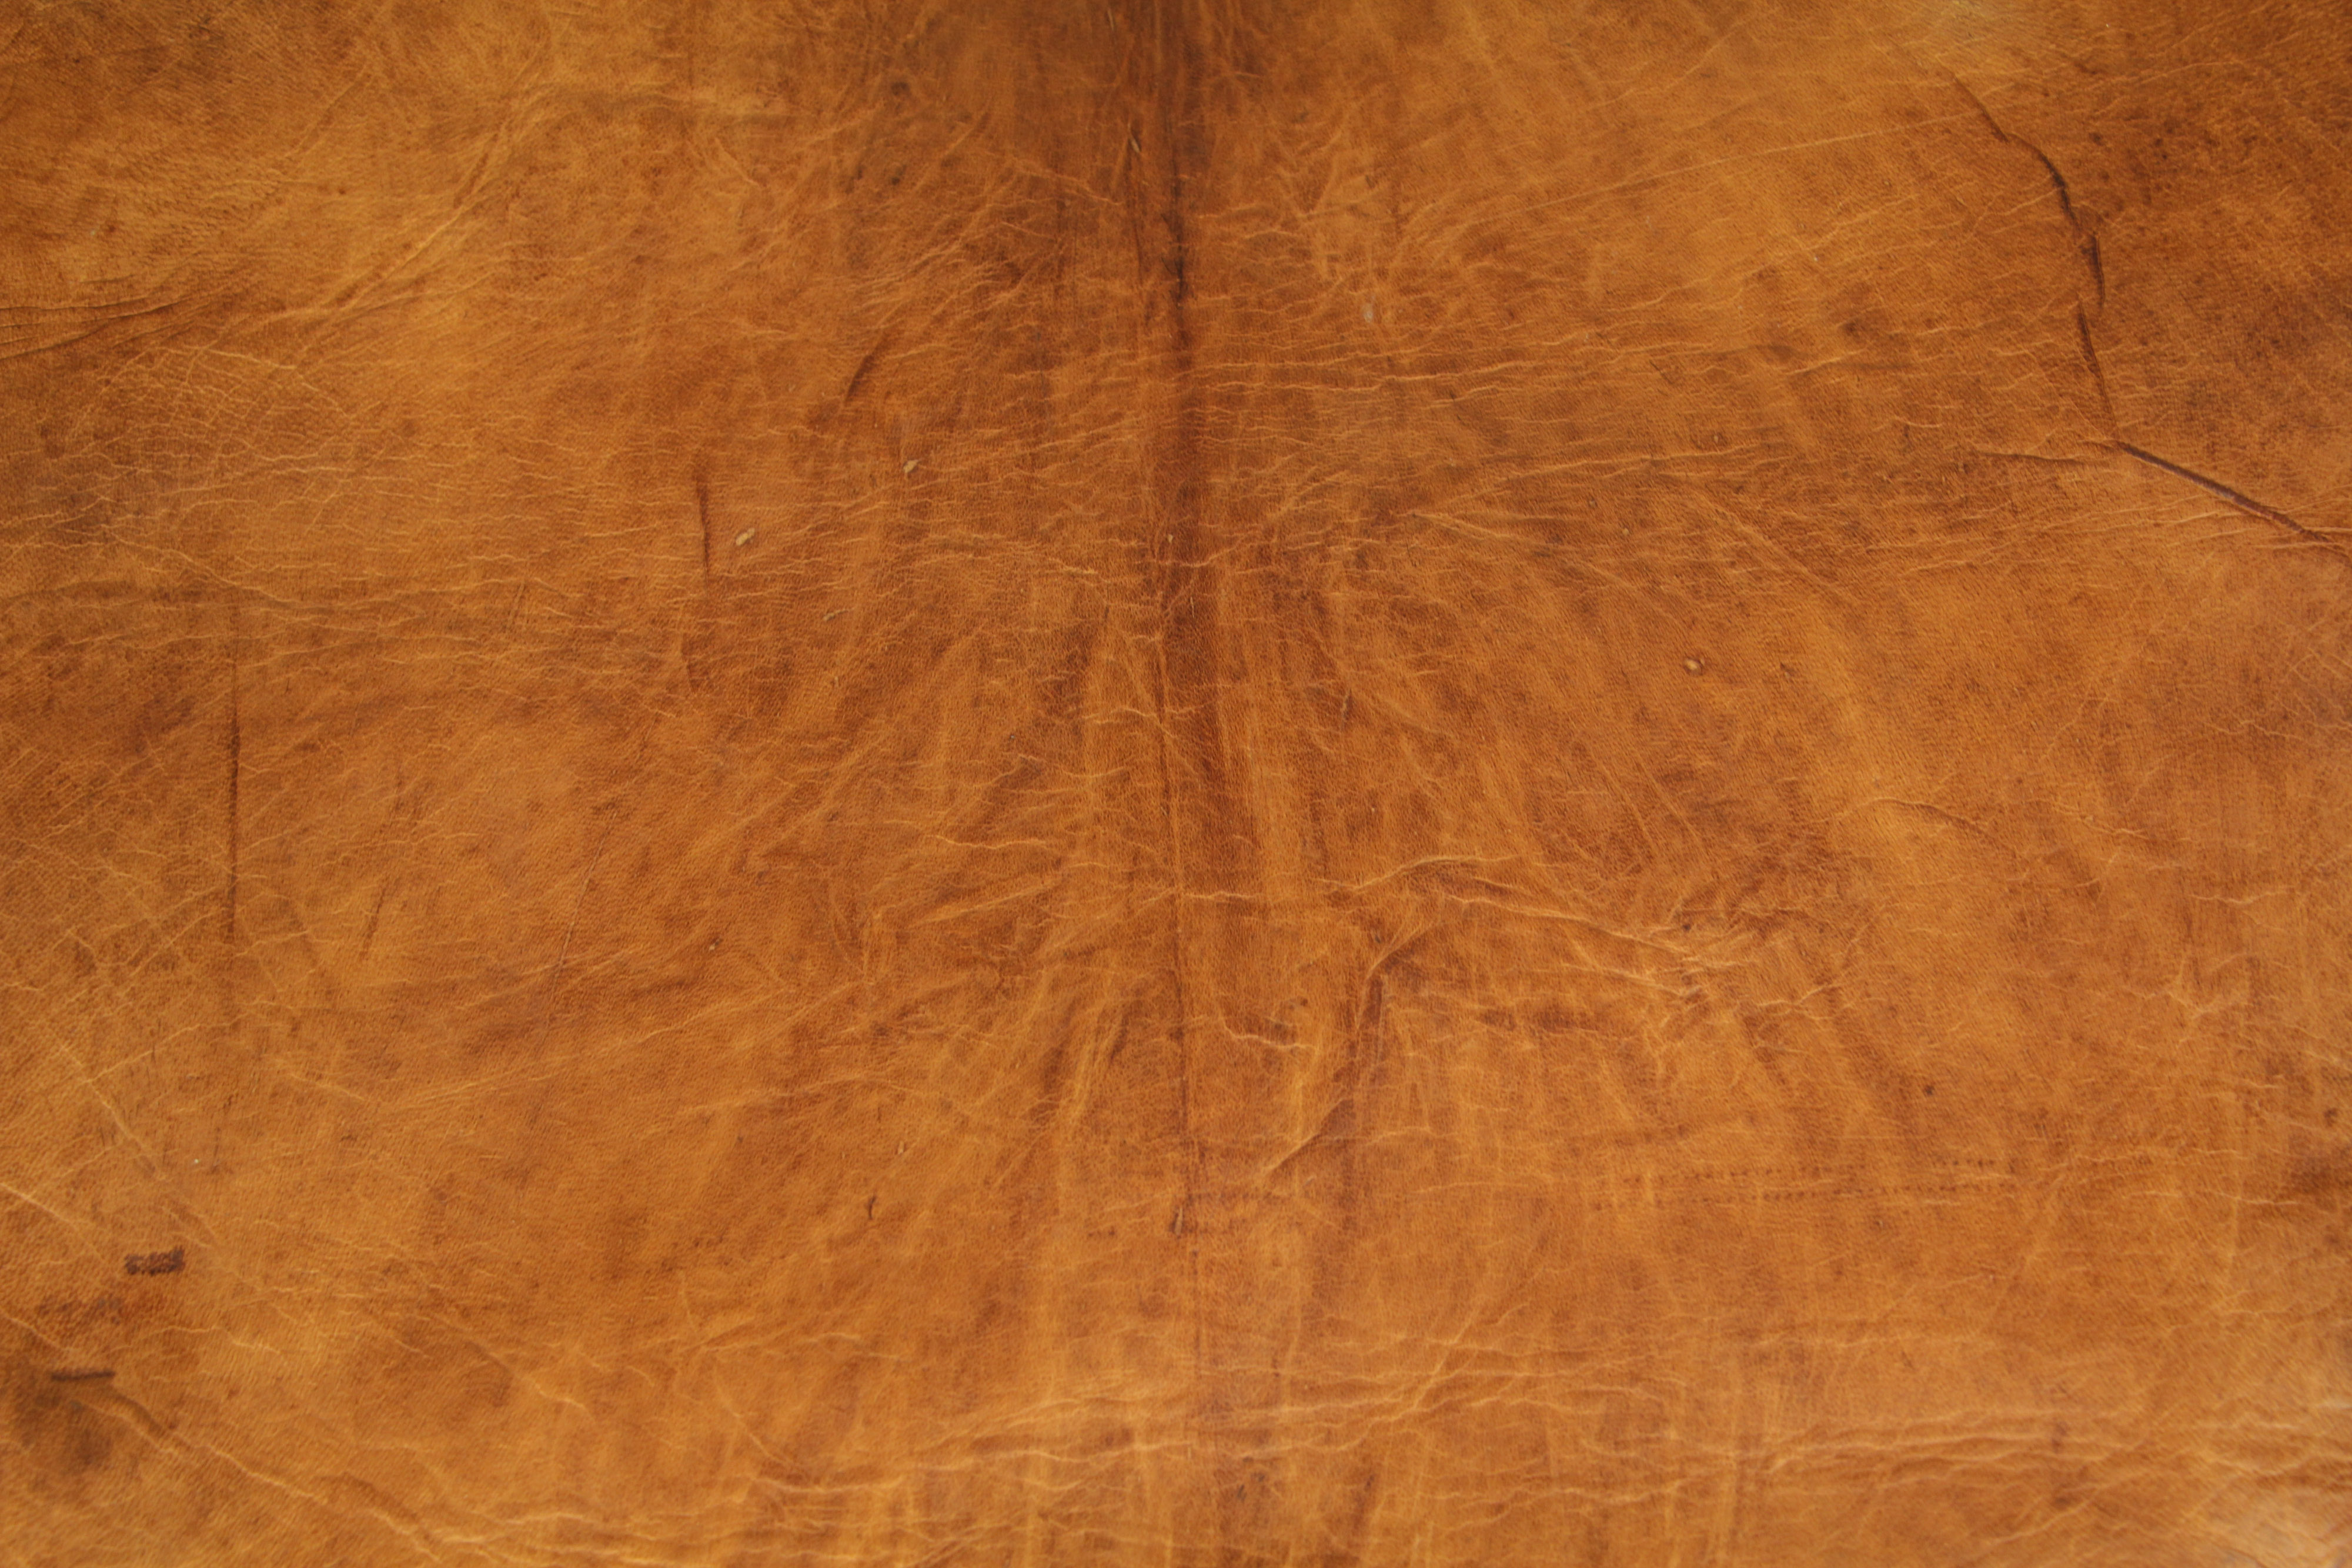 Leather Book Cover Material : Leather textures archives texturex free and premium